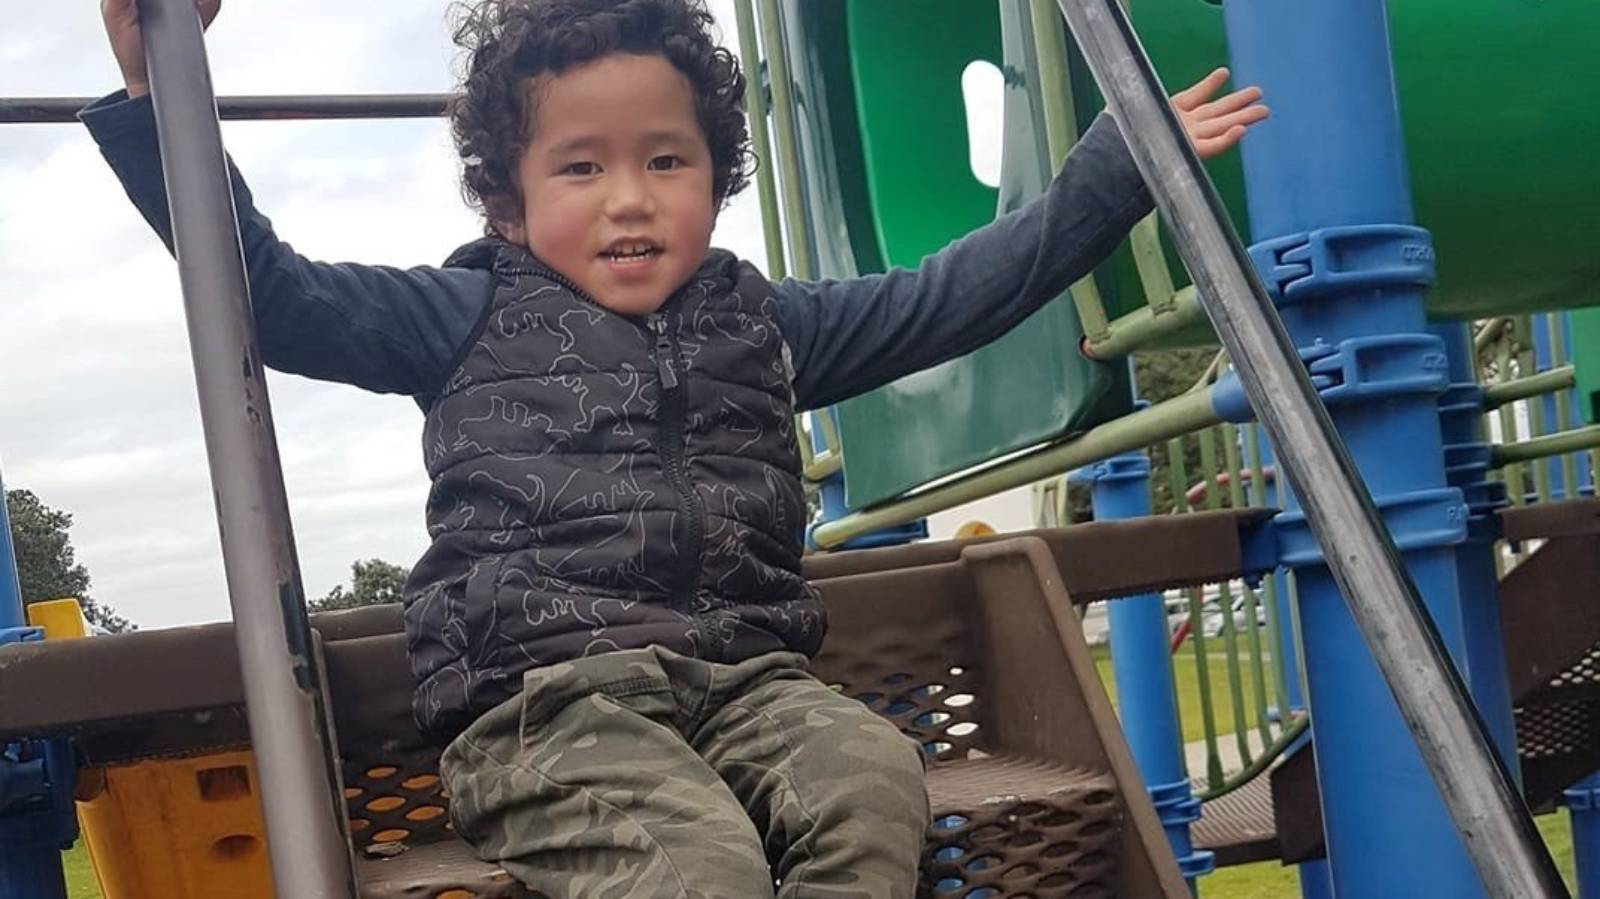 Govt paid $1300 a week for tiny room where boy fatally beaten